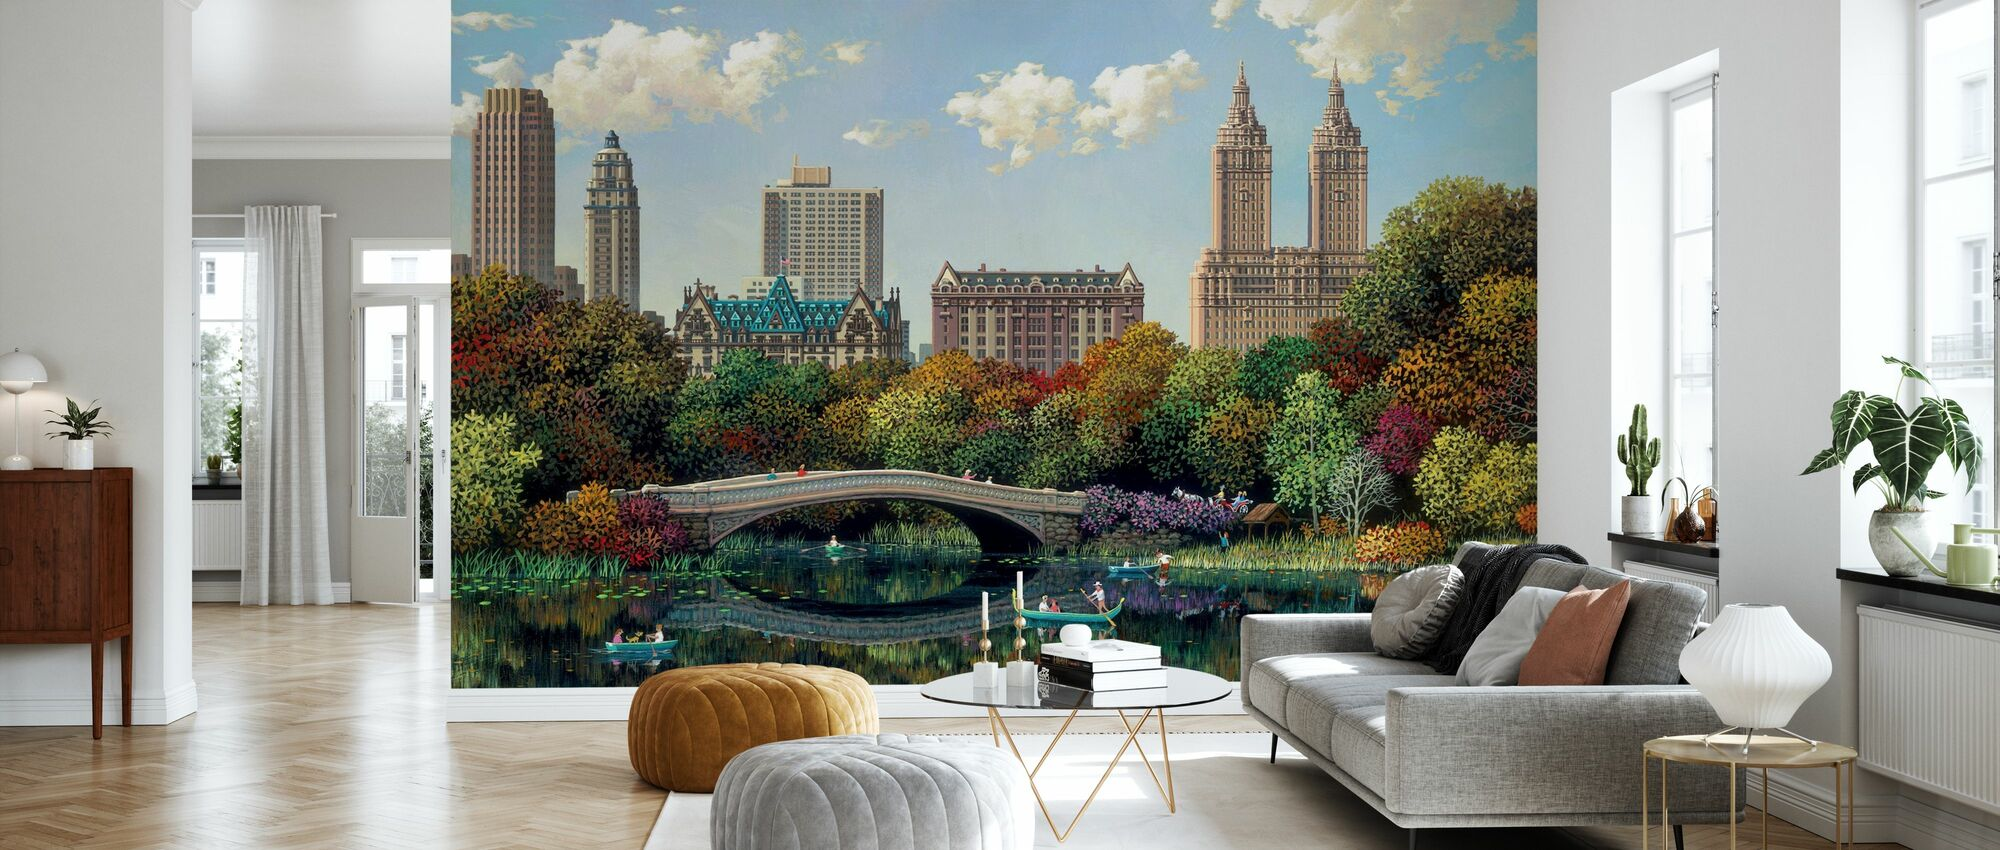 Central Park Bow Bridge - Wallpaper - Living Room